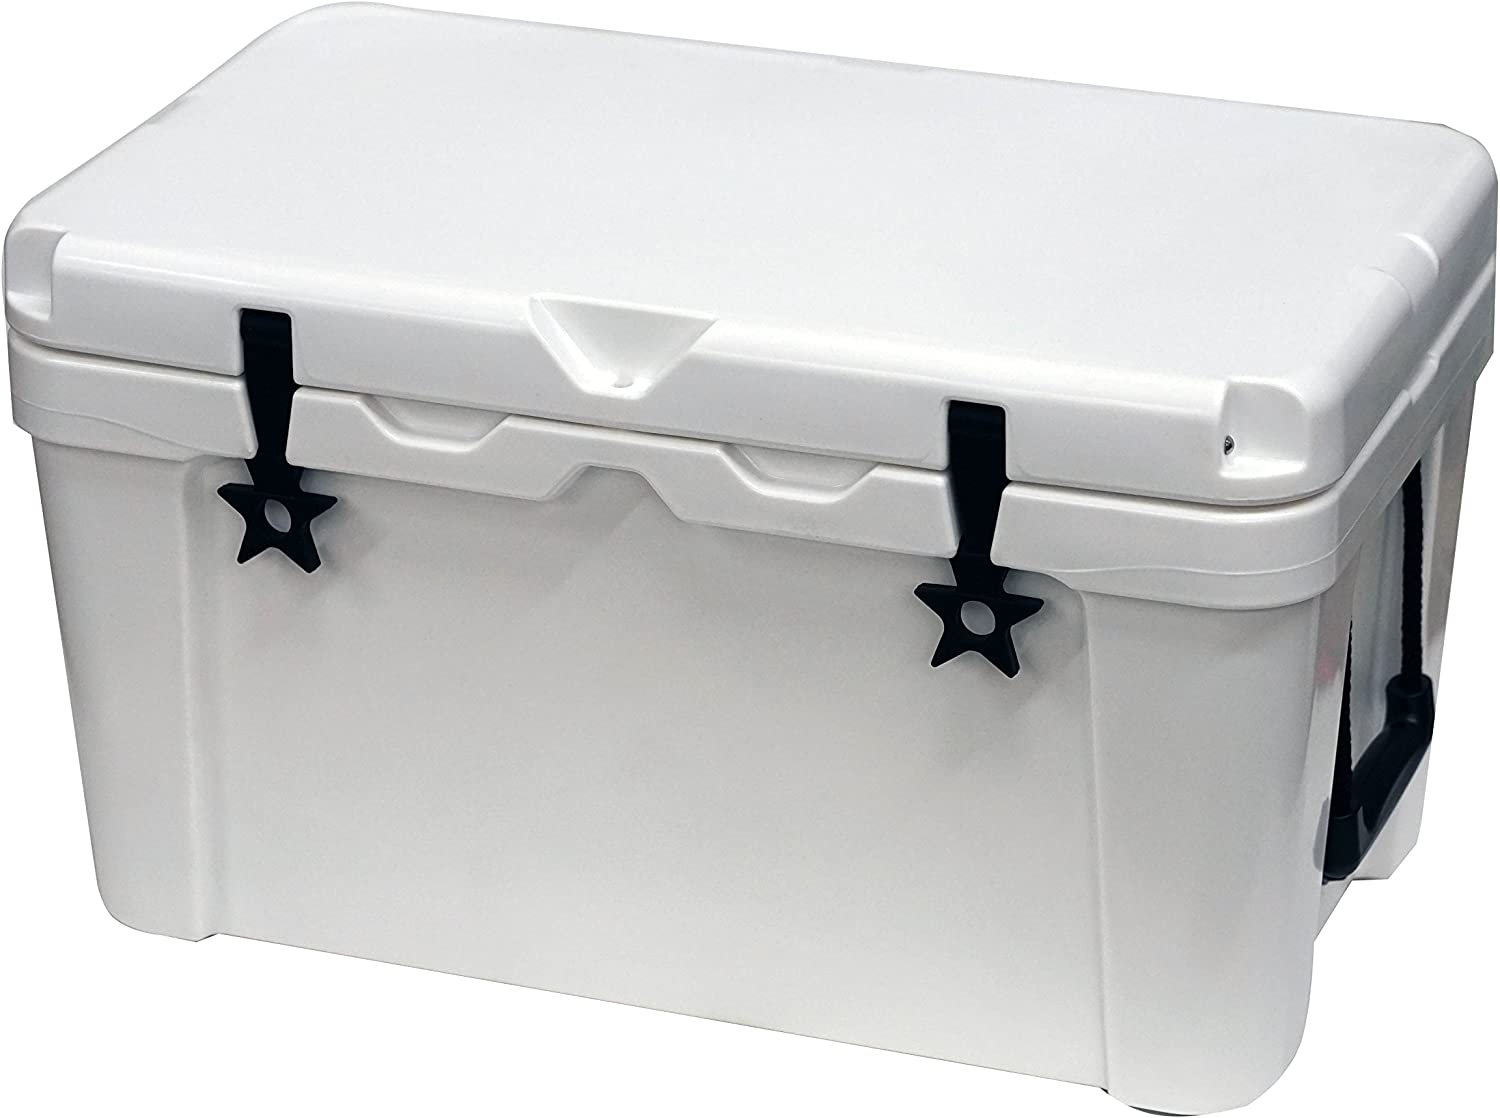 Outbound 20, 45, and 75 Quart Models - Durable & Stylish Rotomolded Coolers, Vacuum Release Valve, and Lo Profile Latching System (45 Quart)